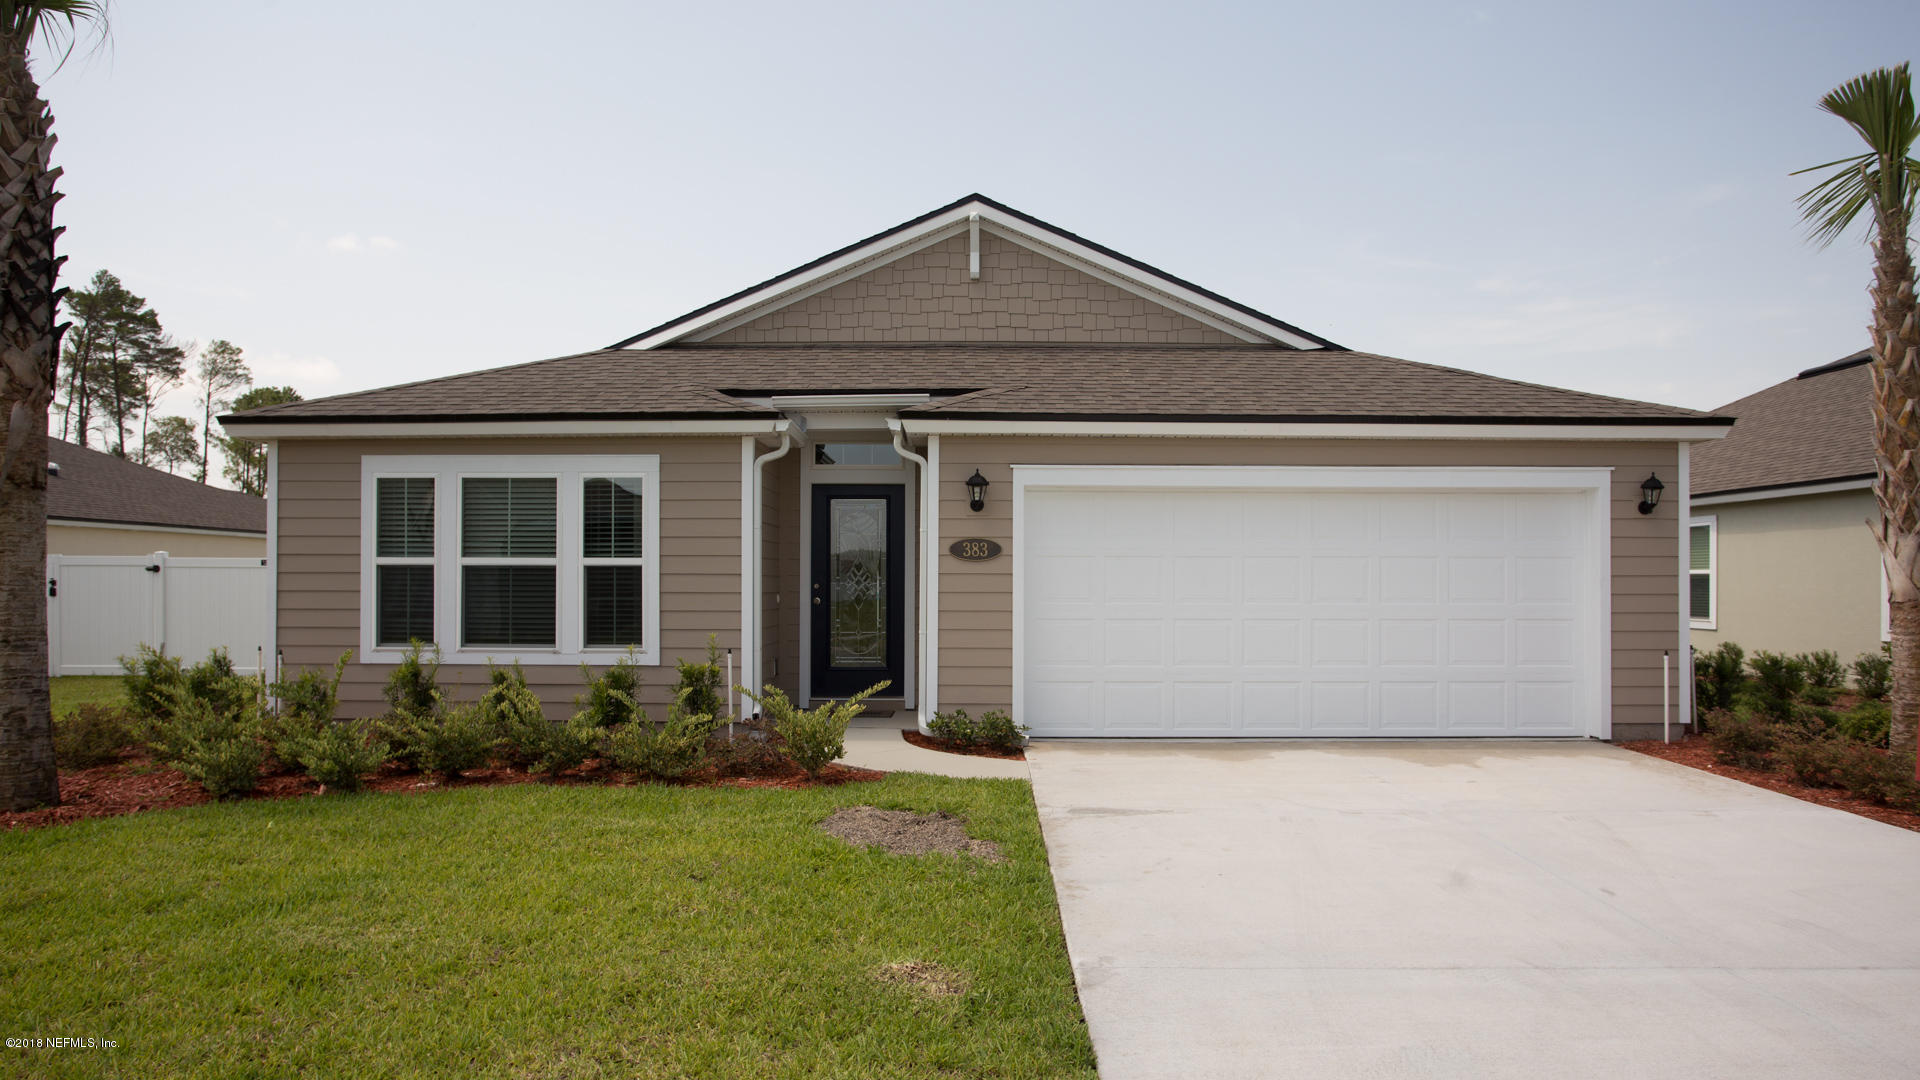 383 SIERRAS, ST AUGUSTINE, FLORIDA 32086, 4 Bedrooms Bedrooms, ,2 BathroomsBathrooms,Residential - single family,For sale,SIERRAS,902559